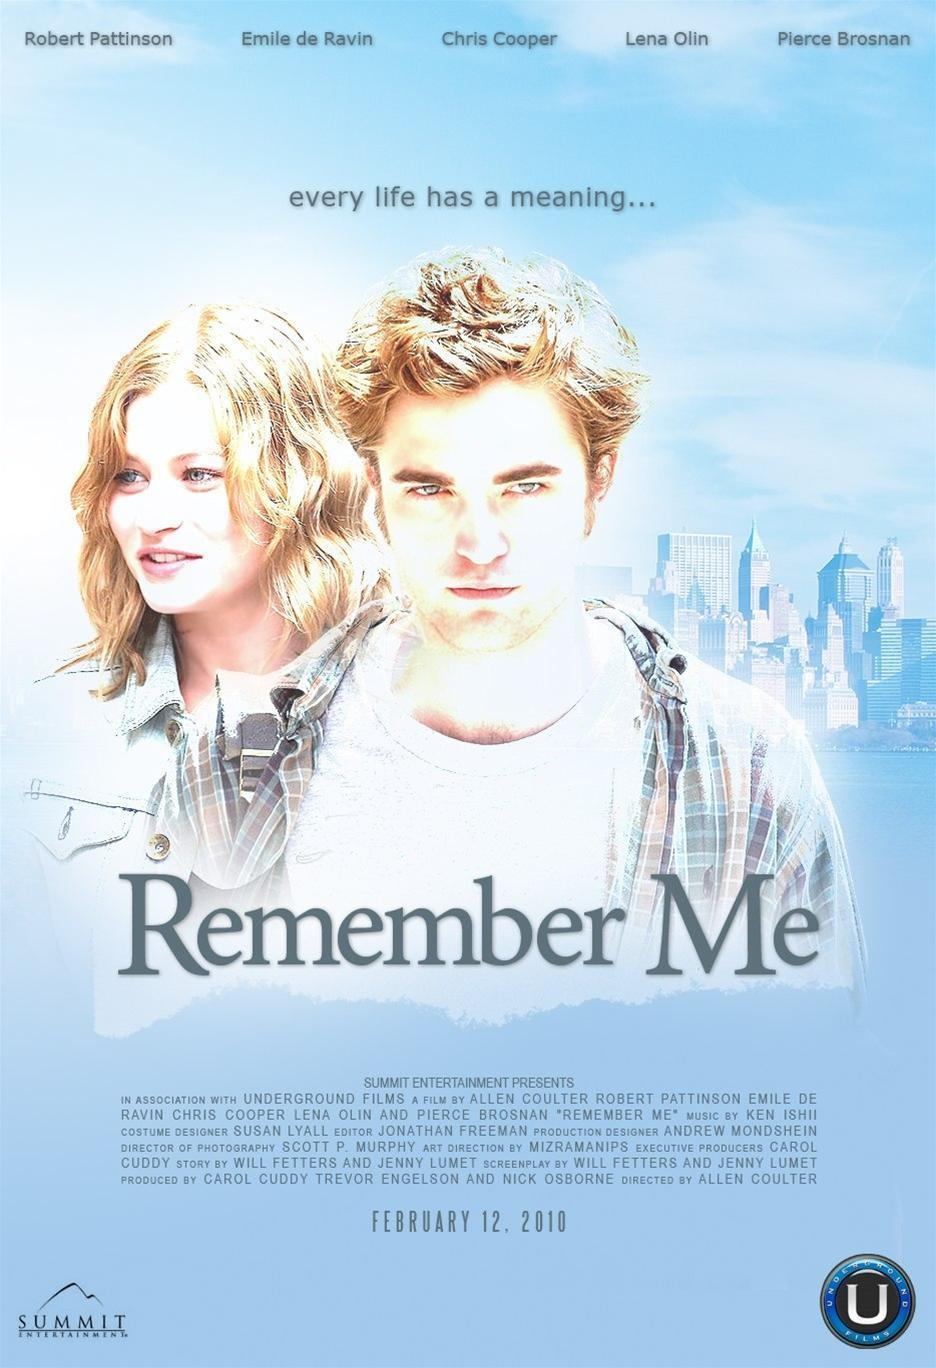 http://images2.fanpop.com/image/photos/9700000/Official-Remember-Me-Poster-twilight-series-9720748-936-1368.jpg